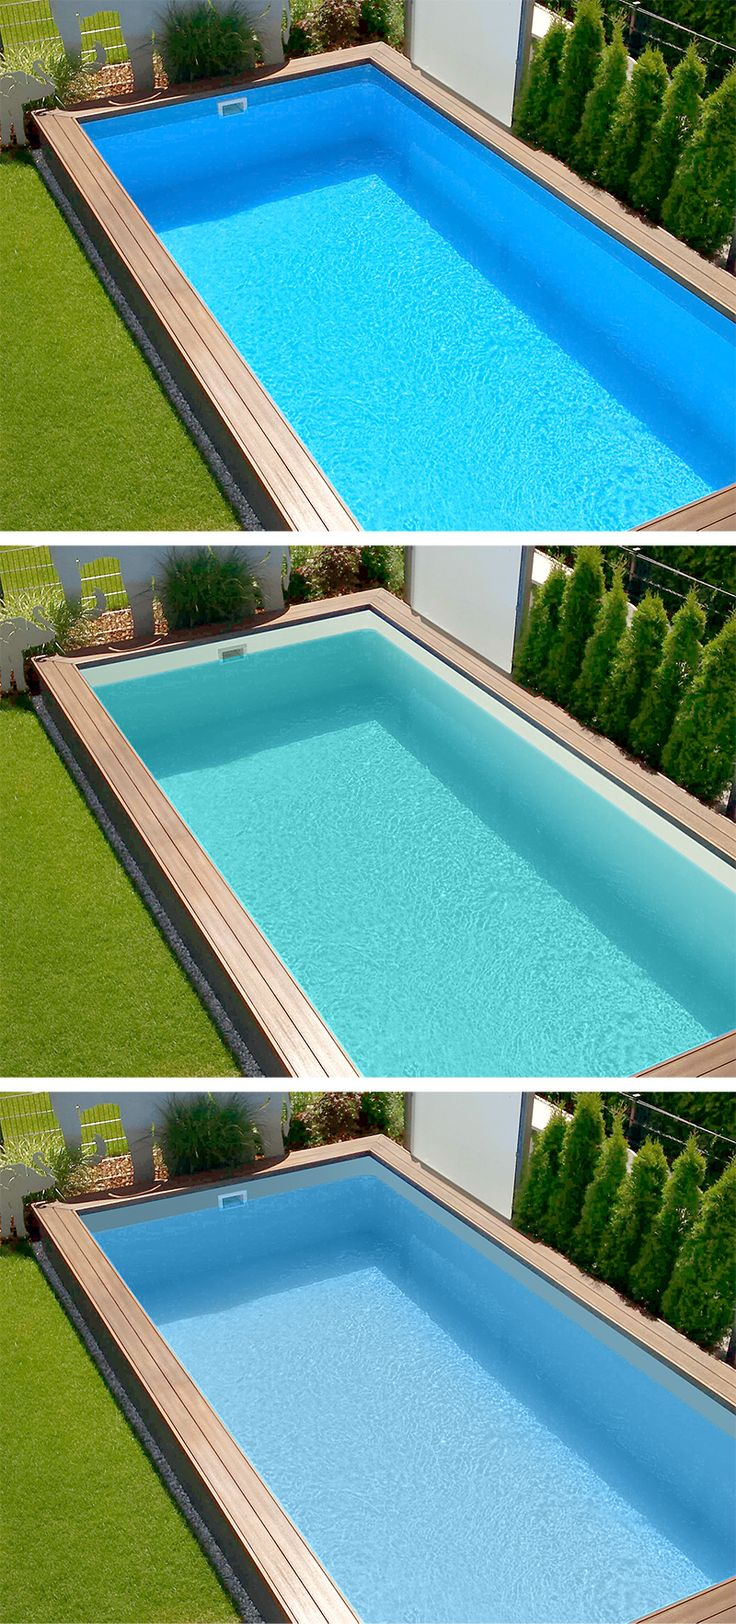 59 best images about gartenpools von poolsana on pinterest shops vinyls and minis - Swimmingpool aufbauen ...